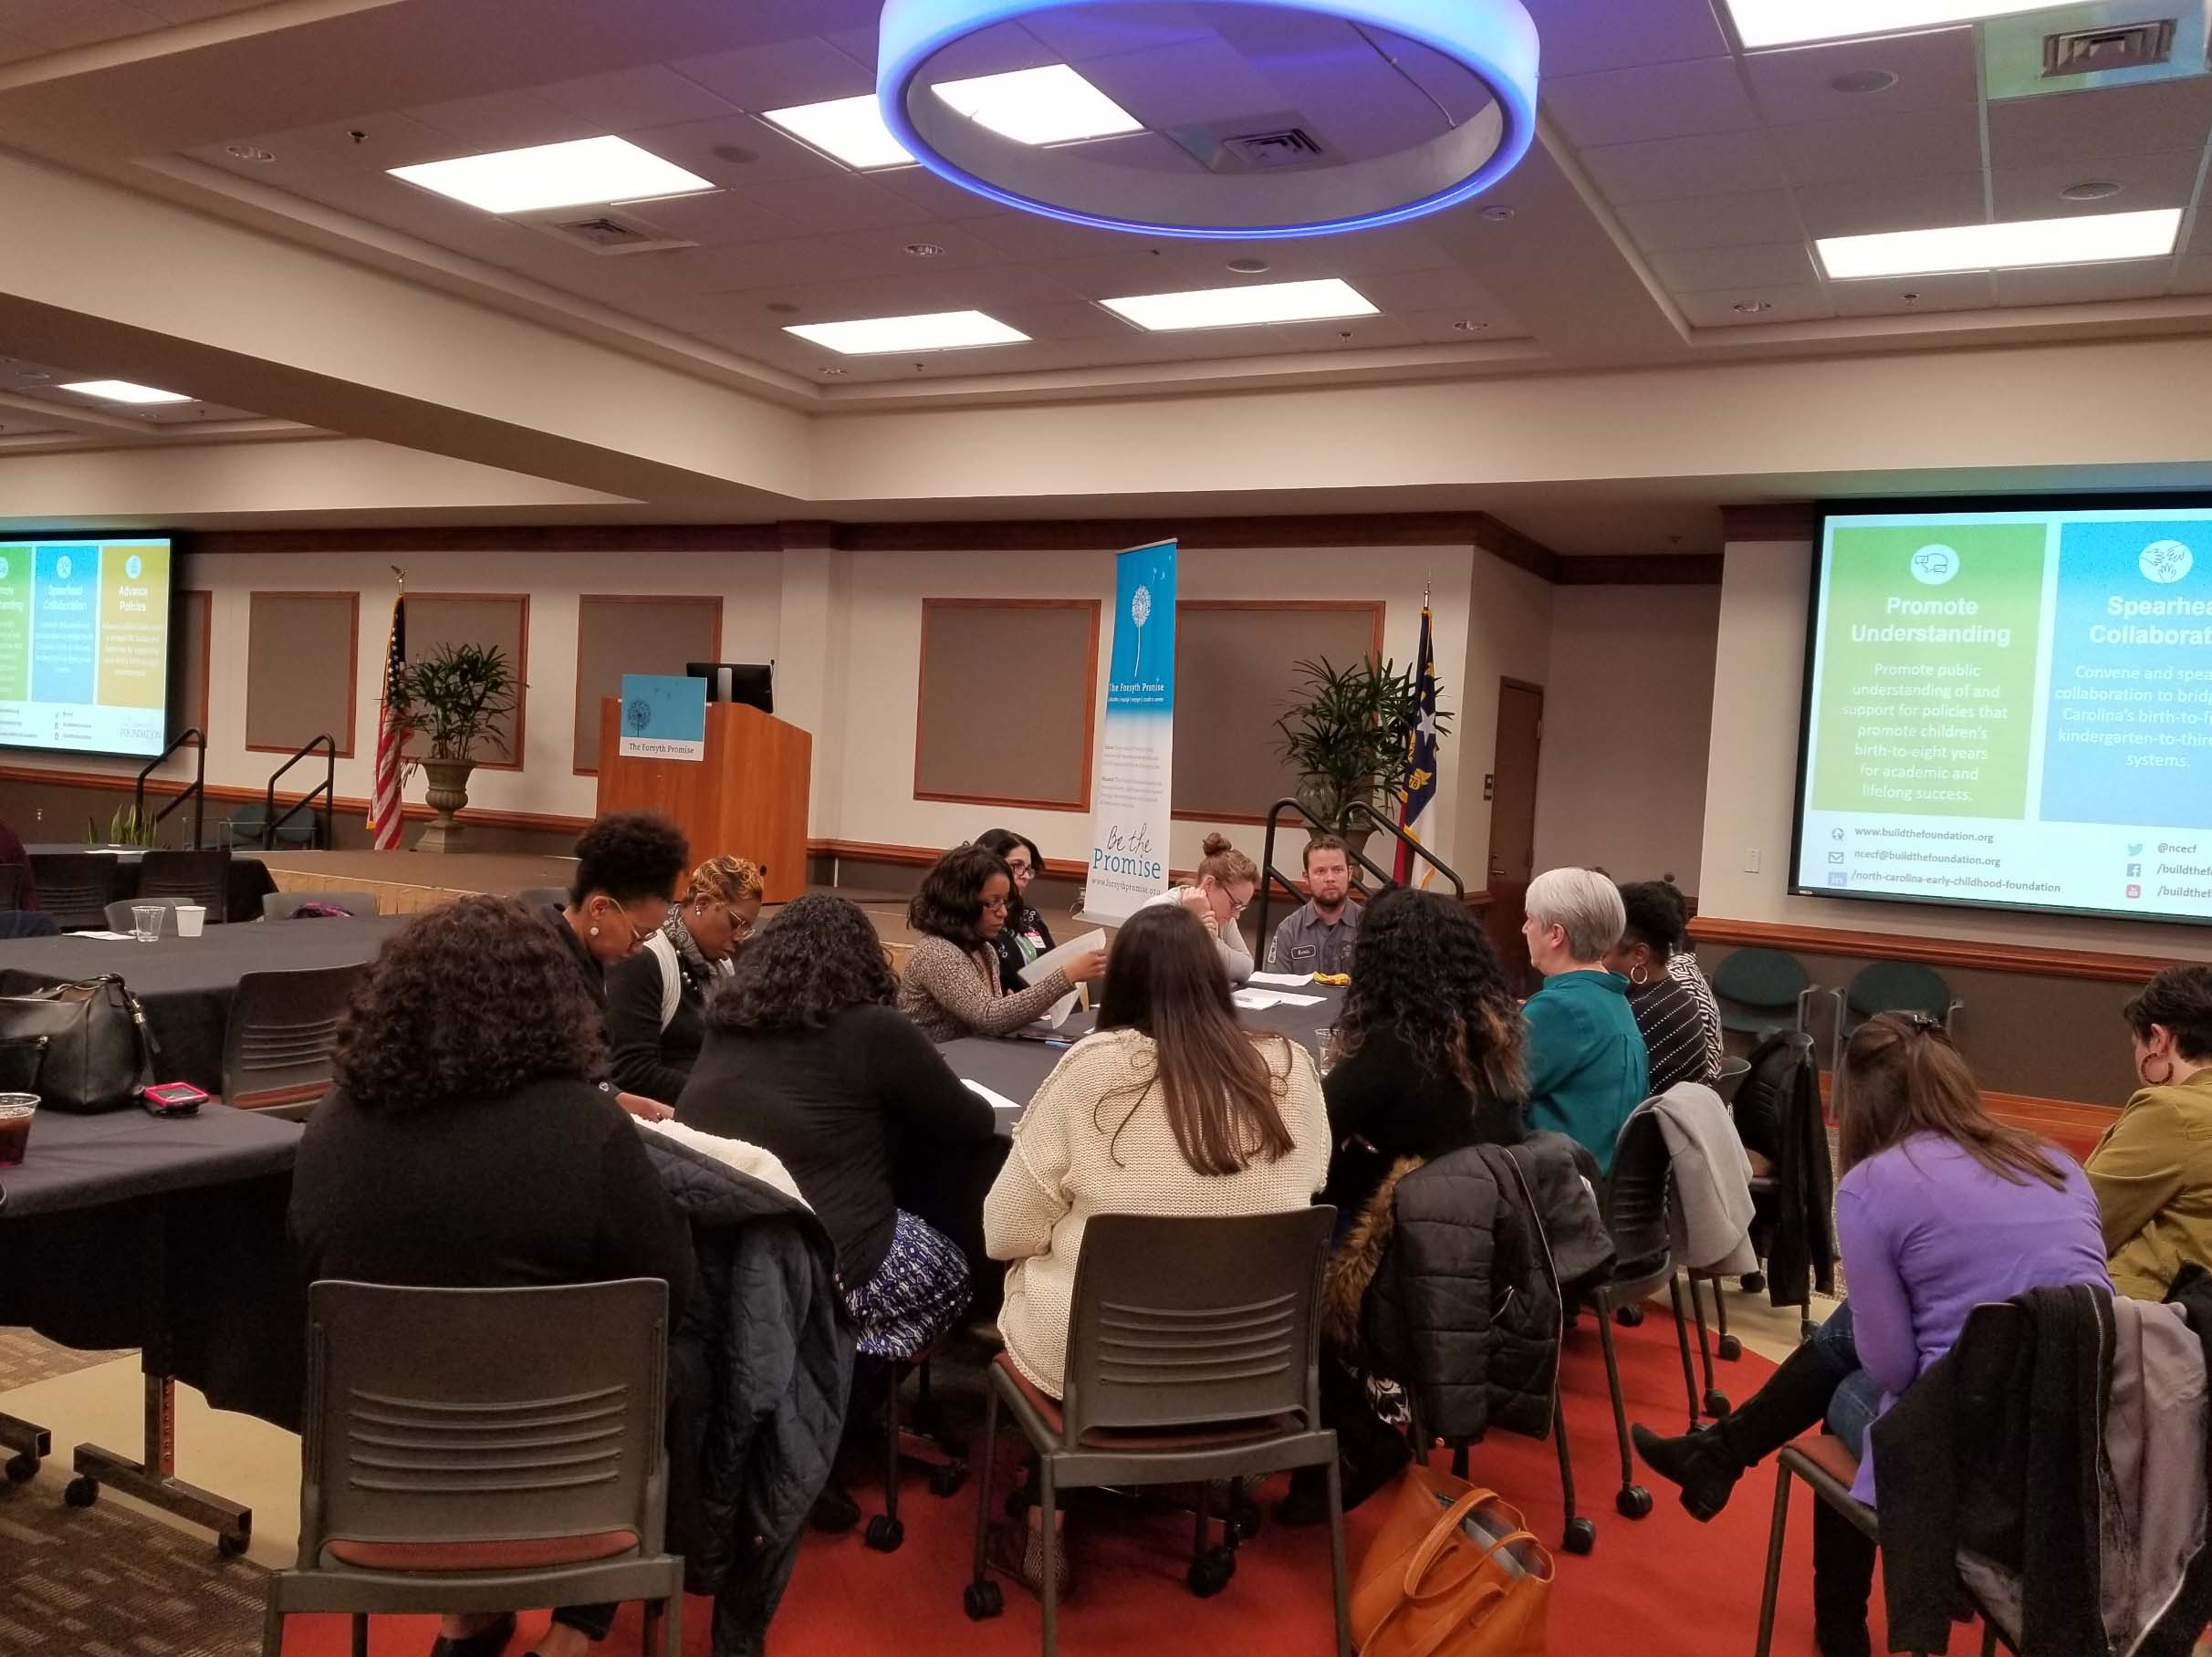 A photograph from a recent action network meeting